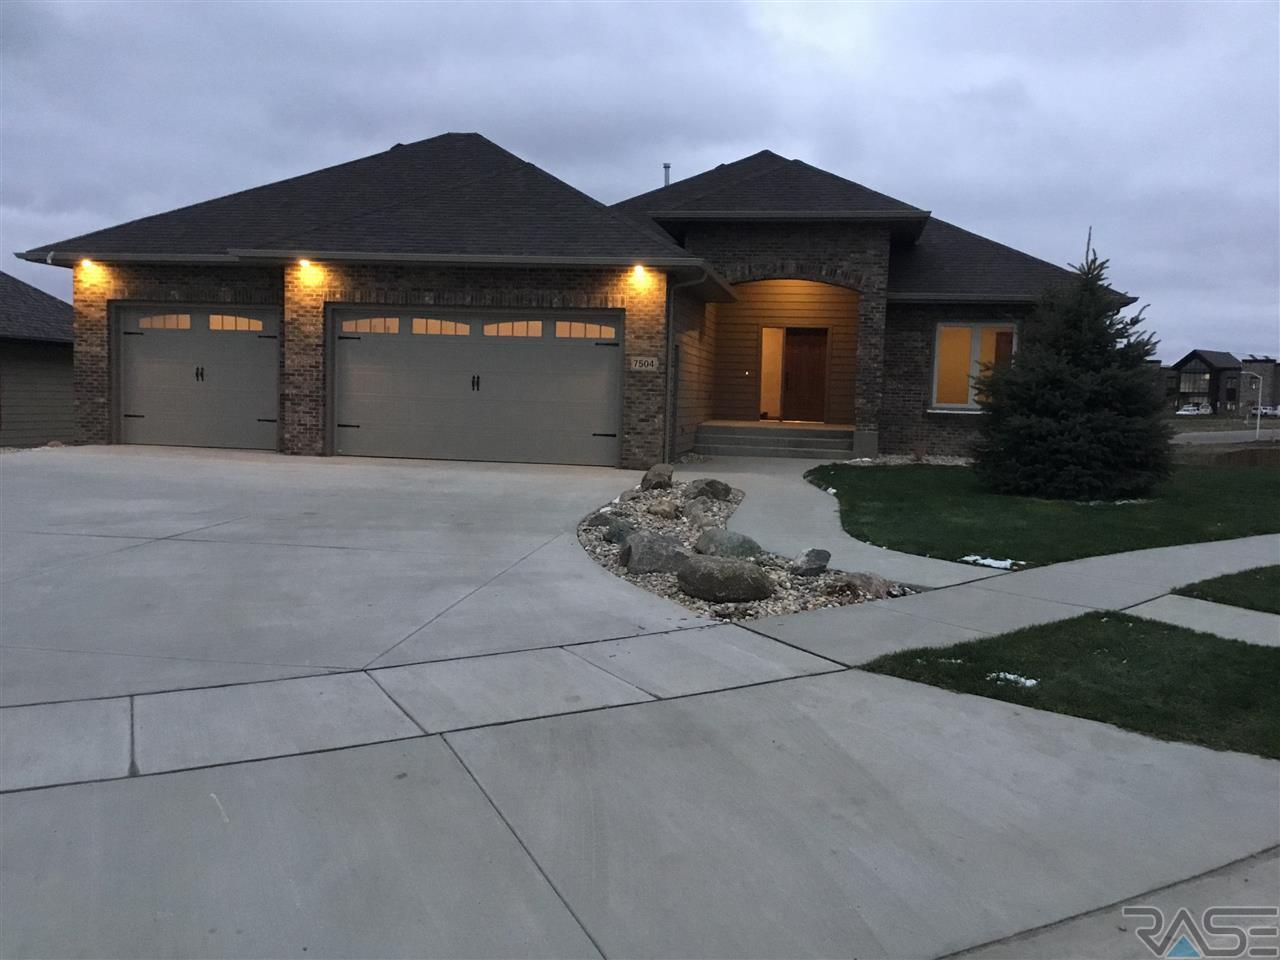 7504 Chatworth Cir, Sioux Falls, SD 57108